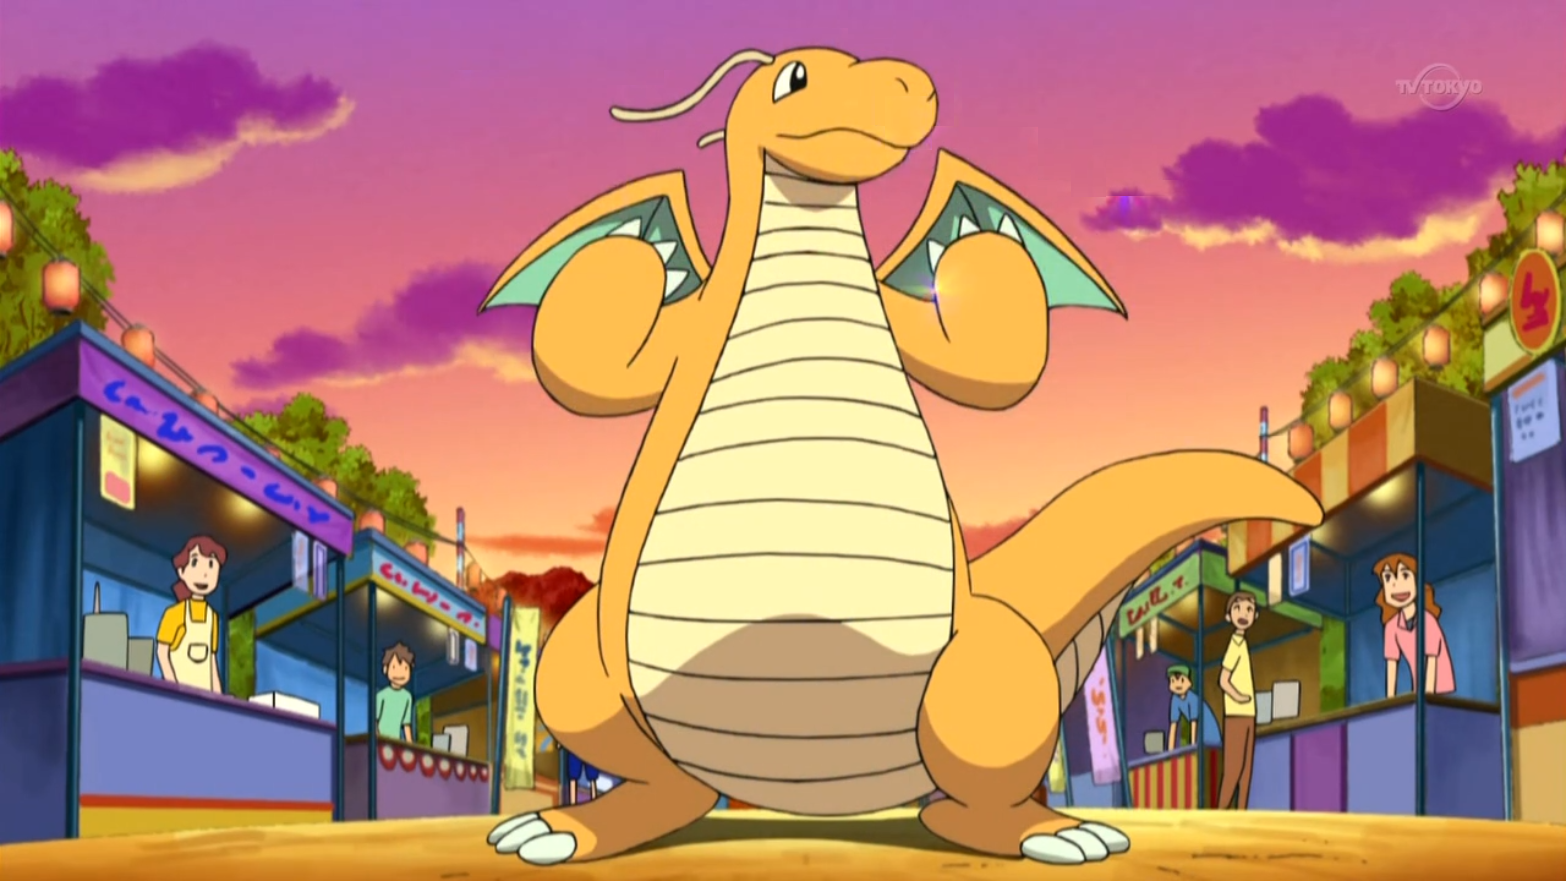 Palmer sends out Dragonite in Twinleaf Town. Some of the inhabitants remembered his Dragonite.